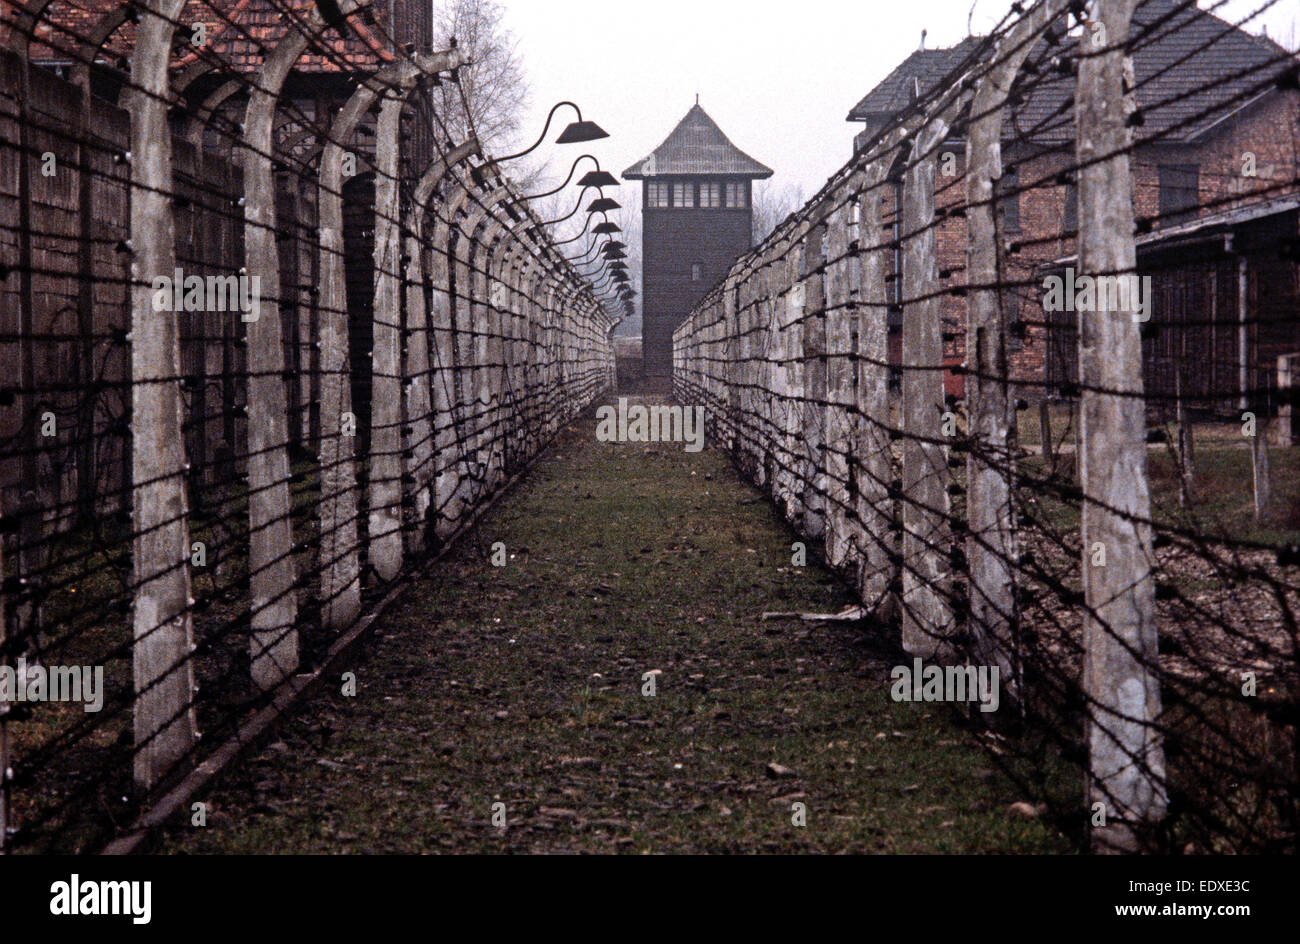 Your idea auschwitz concentration camp are